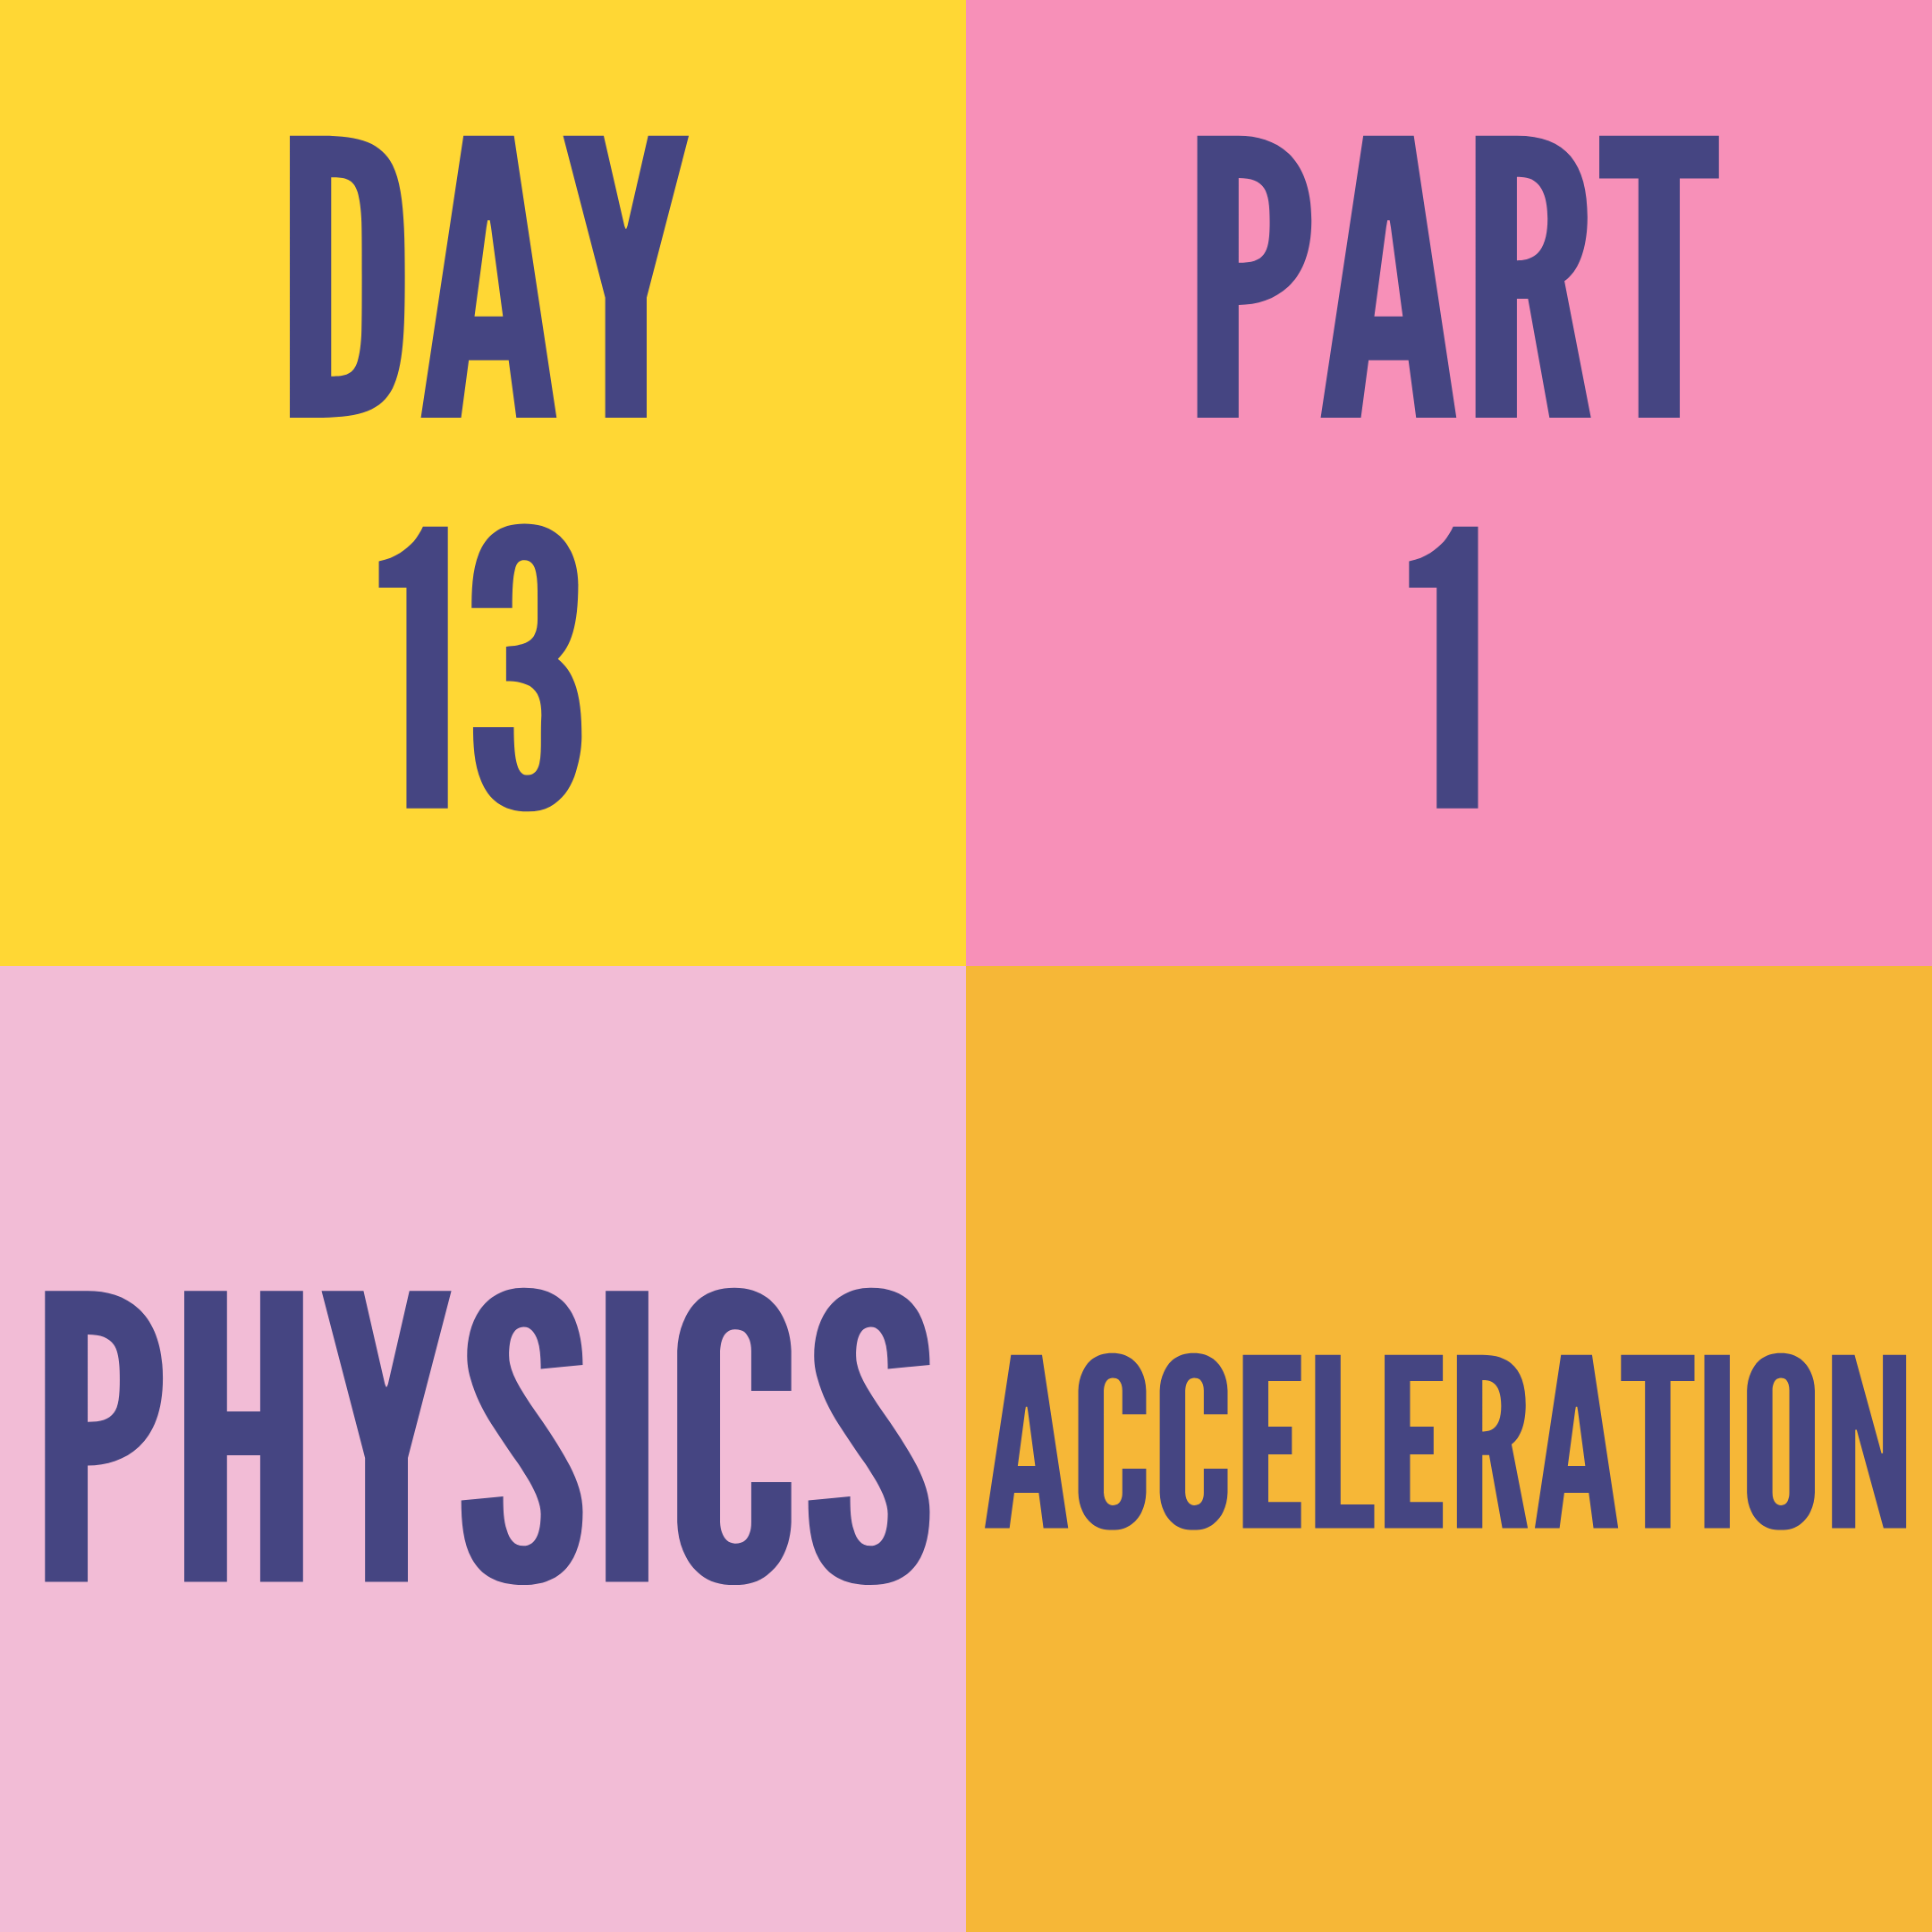 DAY-13 PART-1 ACCELERATION